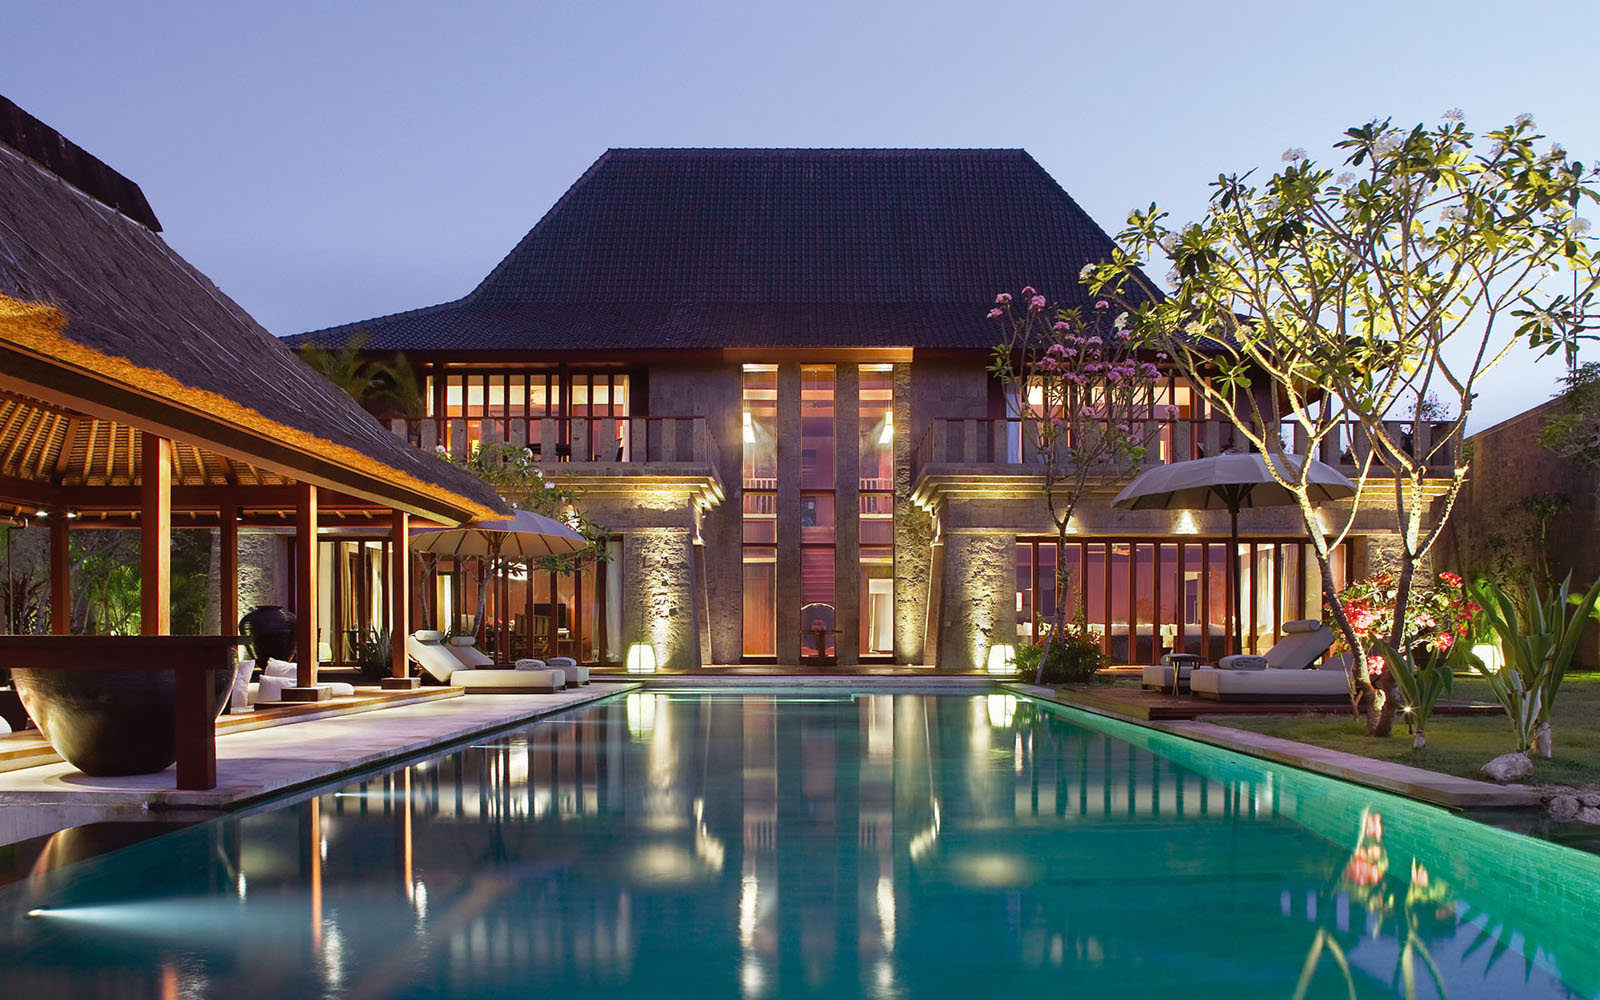 the bulgari villa an exclusive villa within the bulgari resort on the